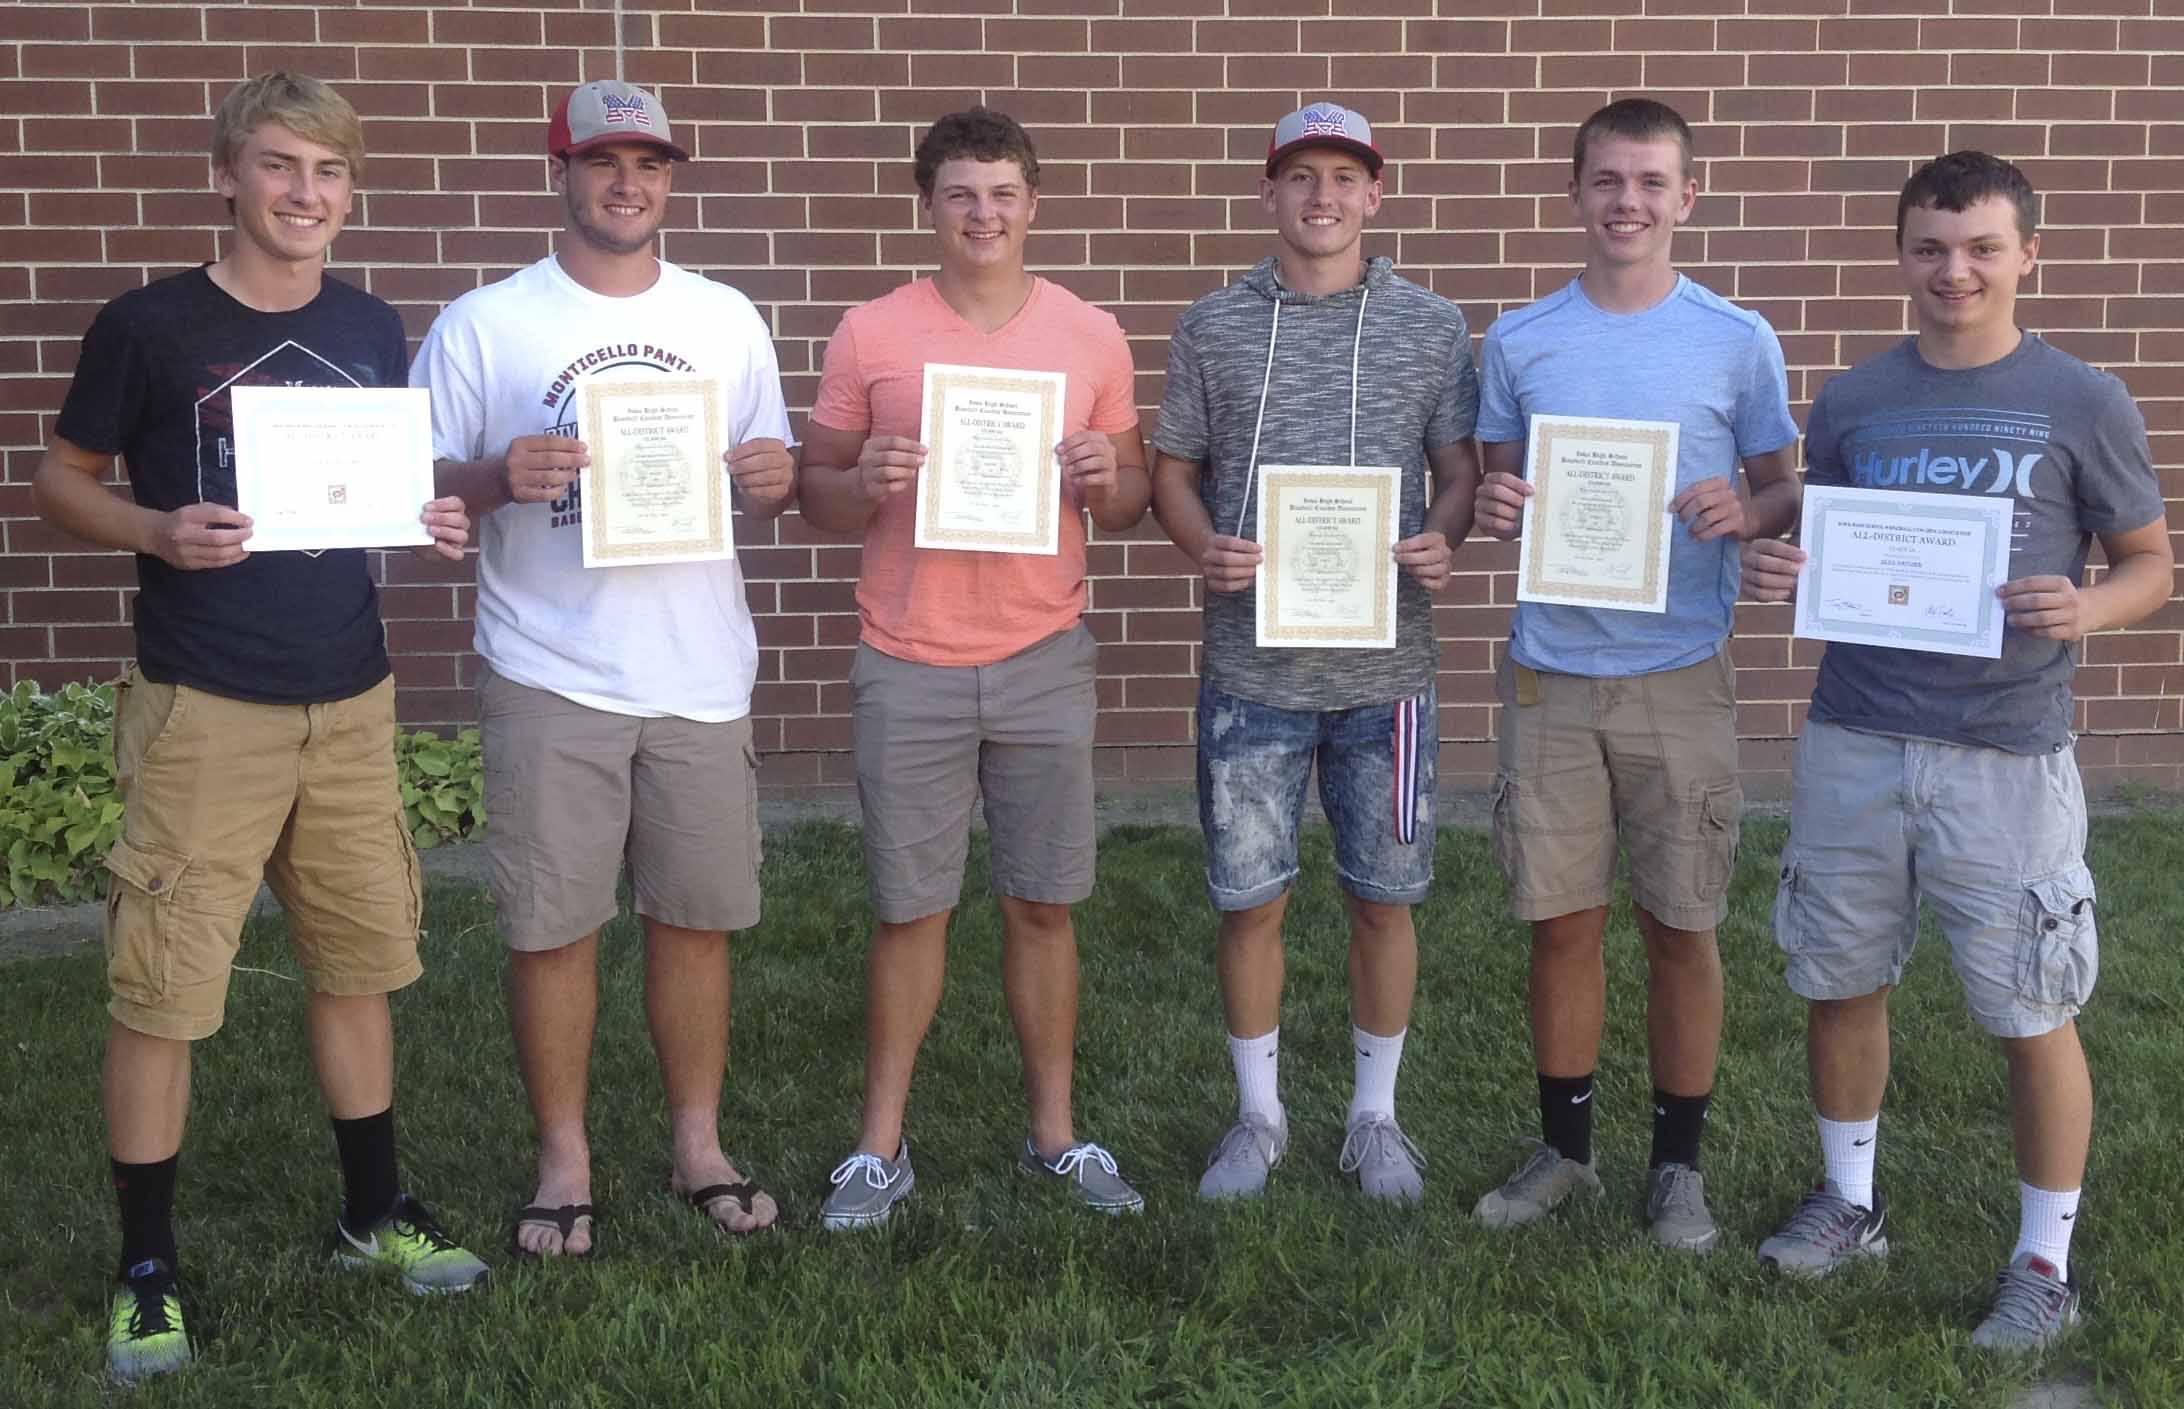 The Monticello High School baseball team held its annual awards banquet July 30 at MHS. Earning All-District honors, from left: Tyler Hospodarsky, Ryan Manternach, Jacob Manternach, Andrew Mescher, Kyle Sperfslage and Alex Kremer. (Photos courtesy of Adriel Soper)